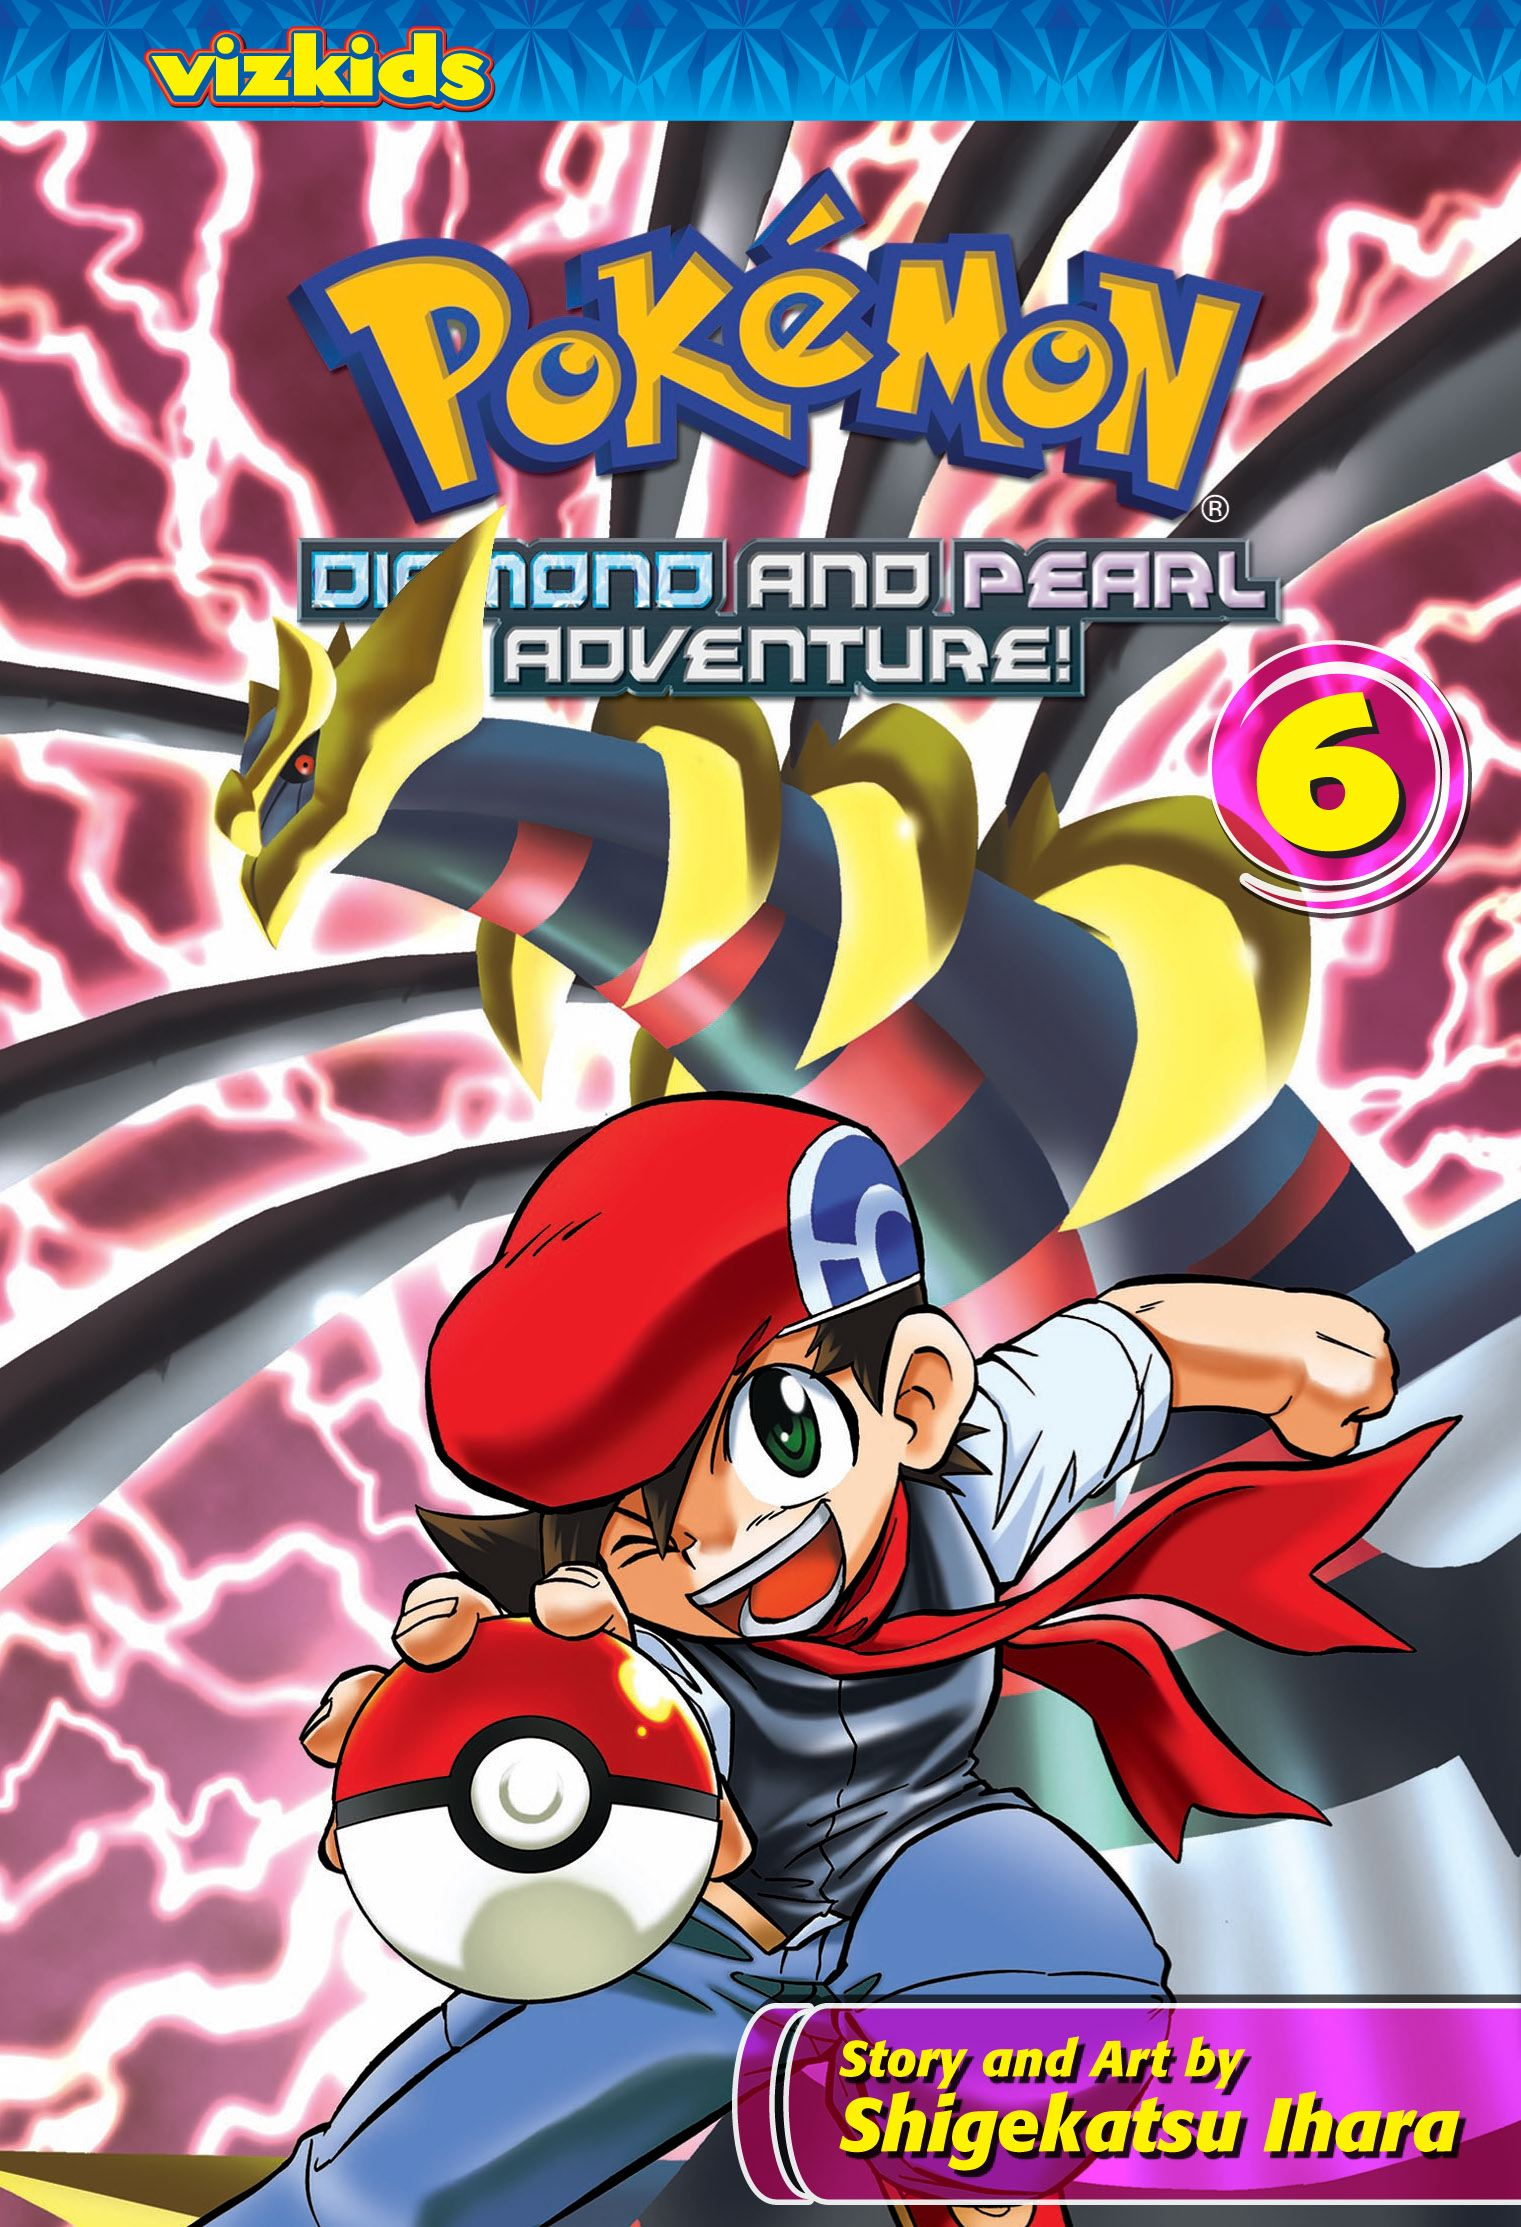 Pokemon diamond and pearl adventure vol 6 9781421531700 hr